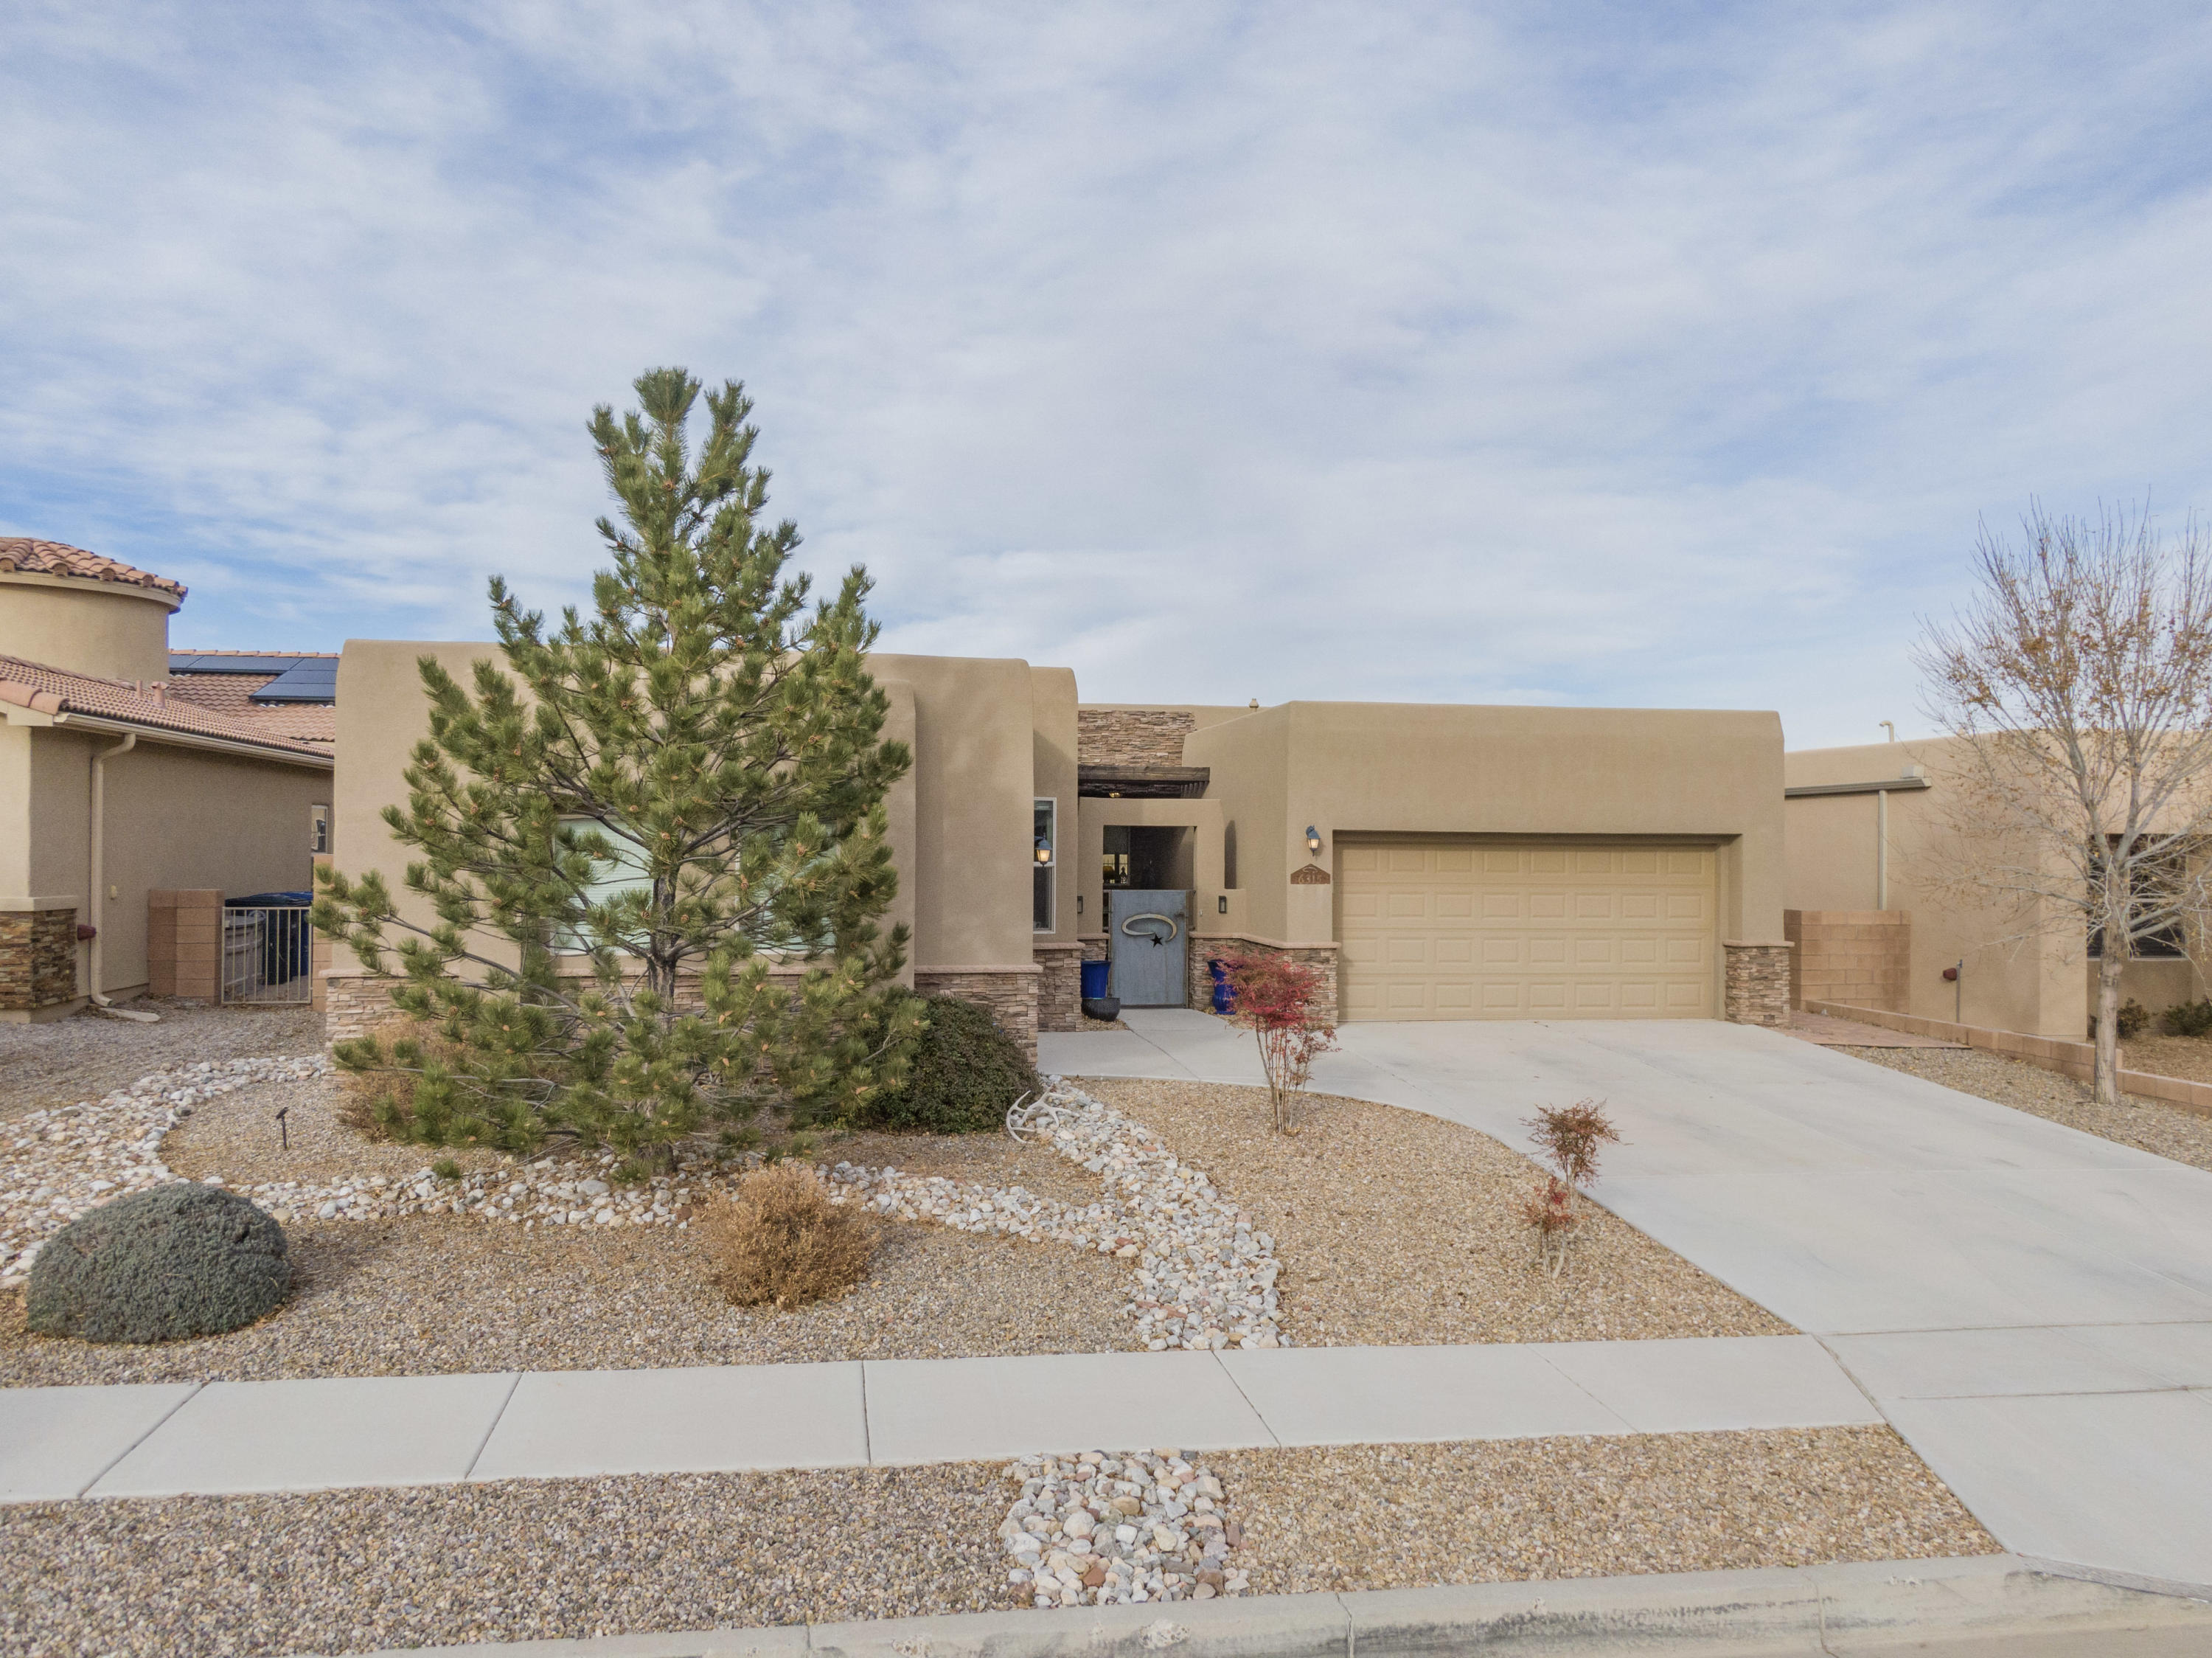 6315 CAMINO DE PAZ Road, Albuquerque NM 87120